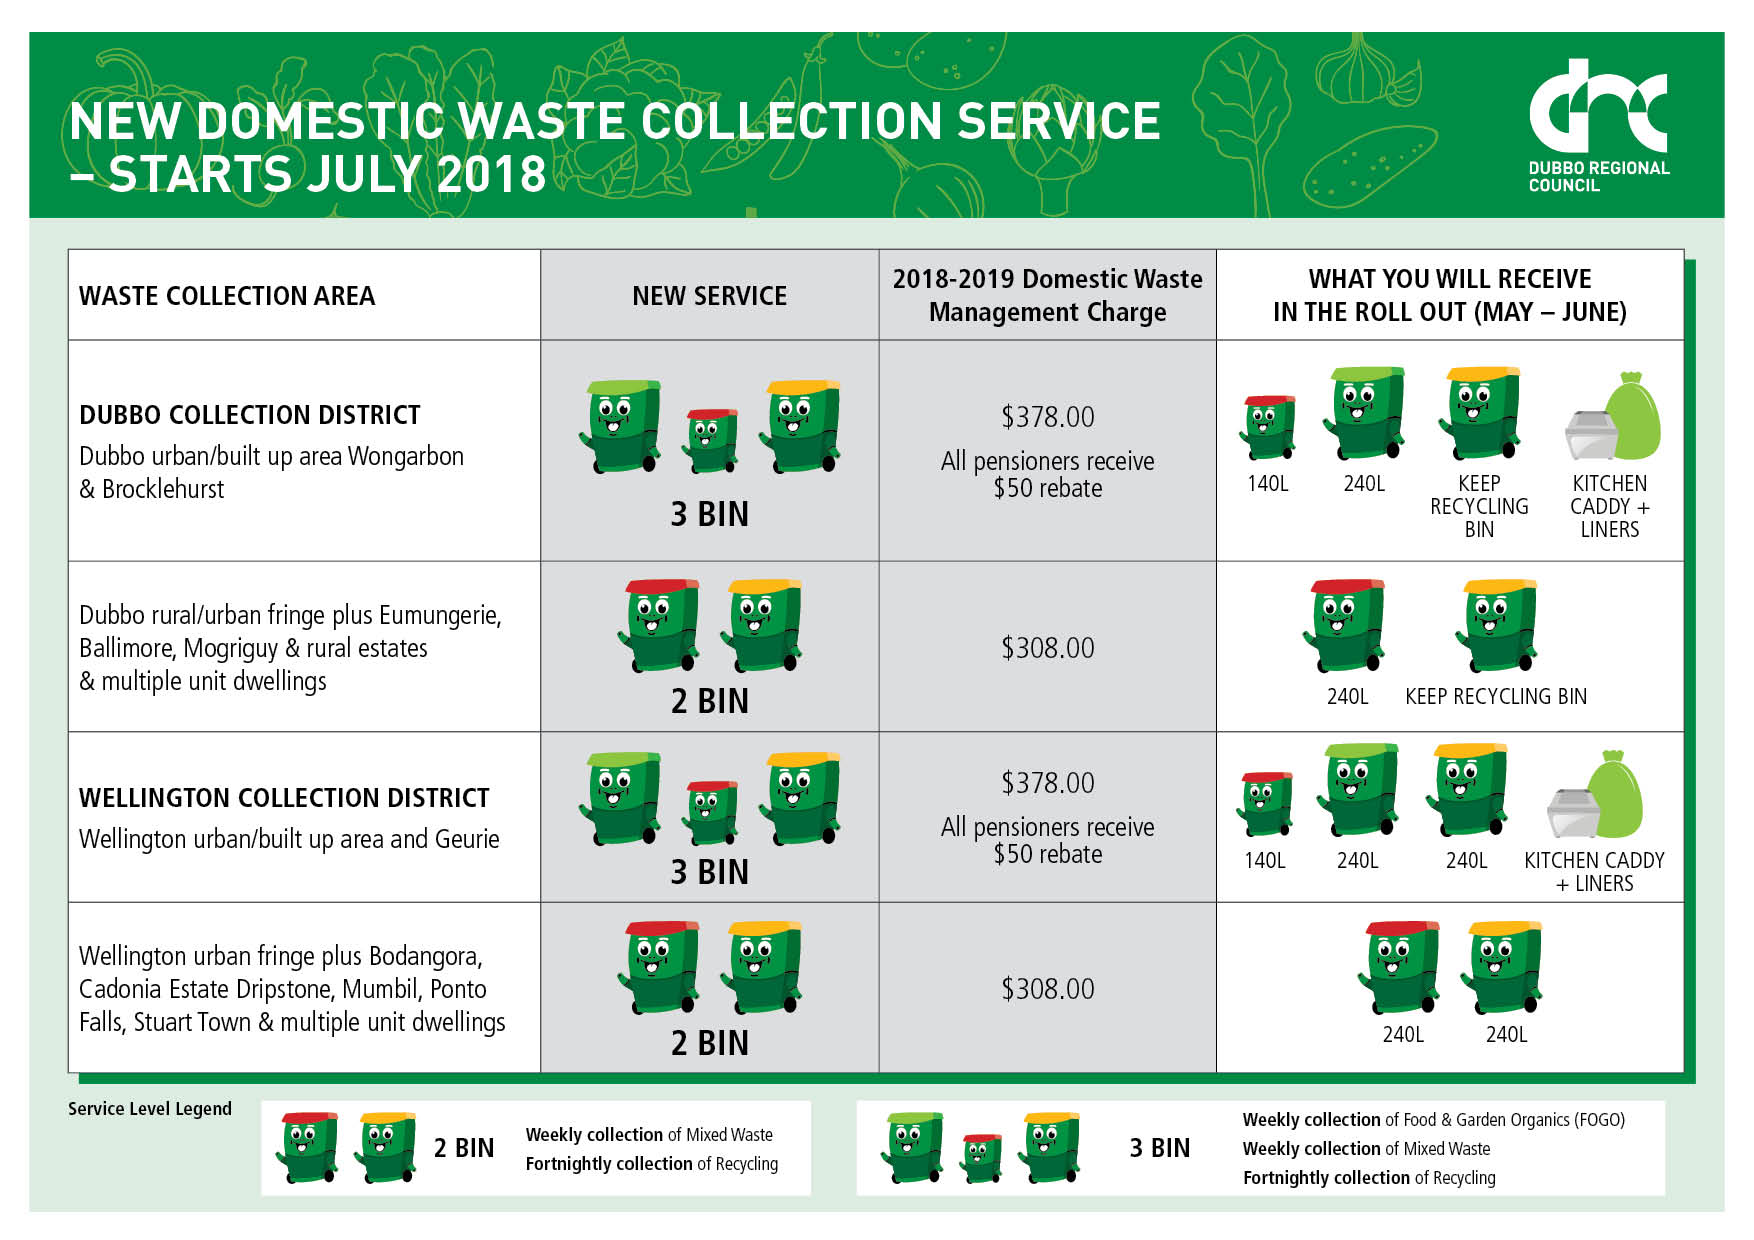 New Domestic Waste Collection Service 2018